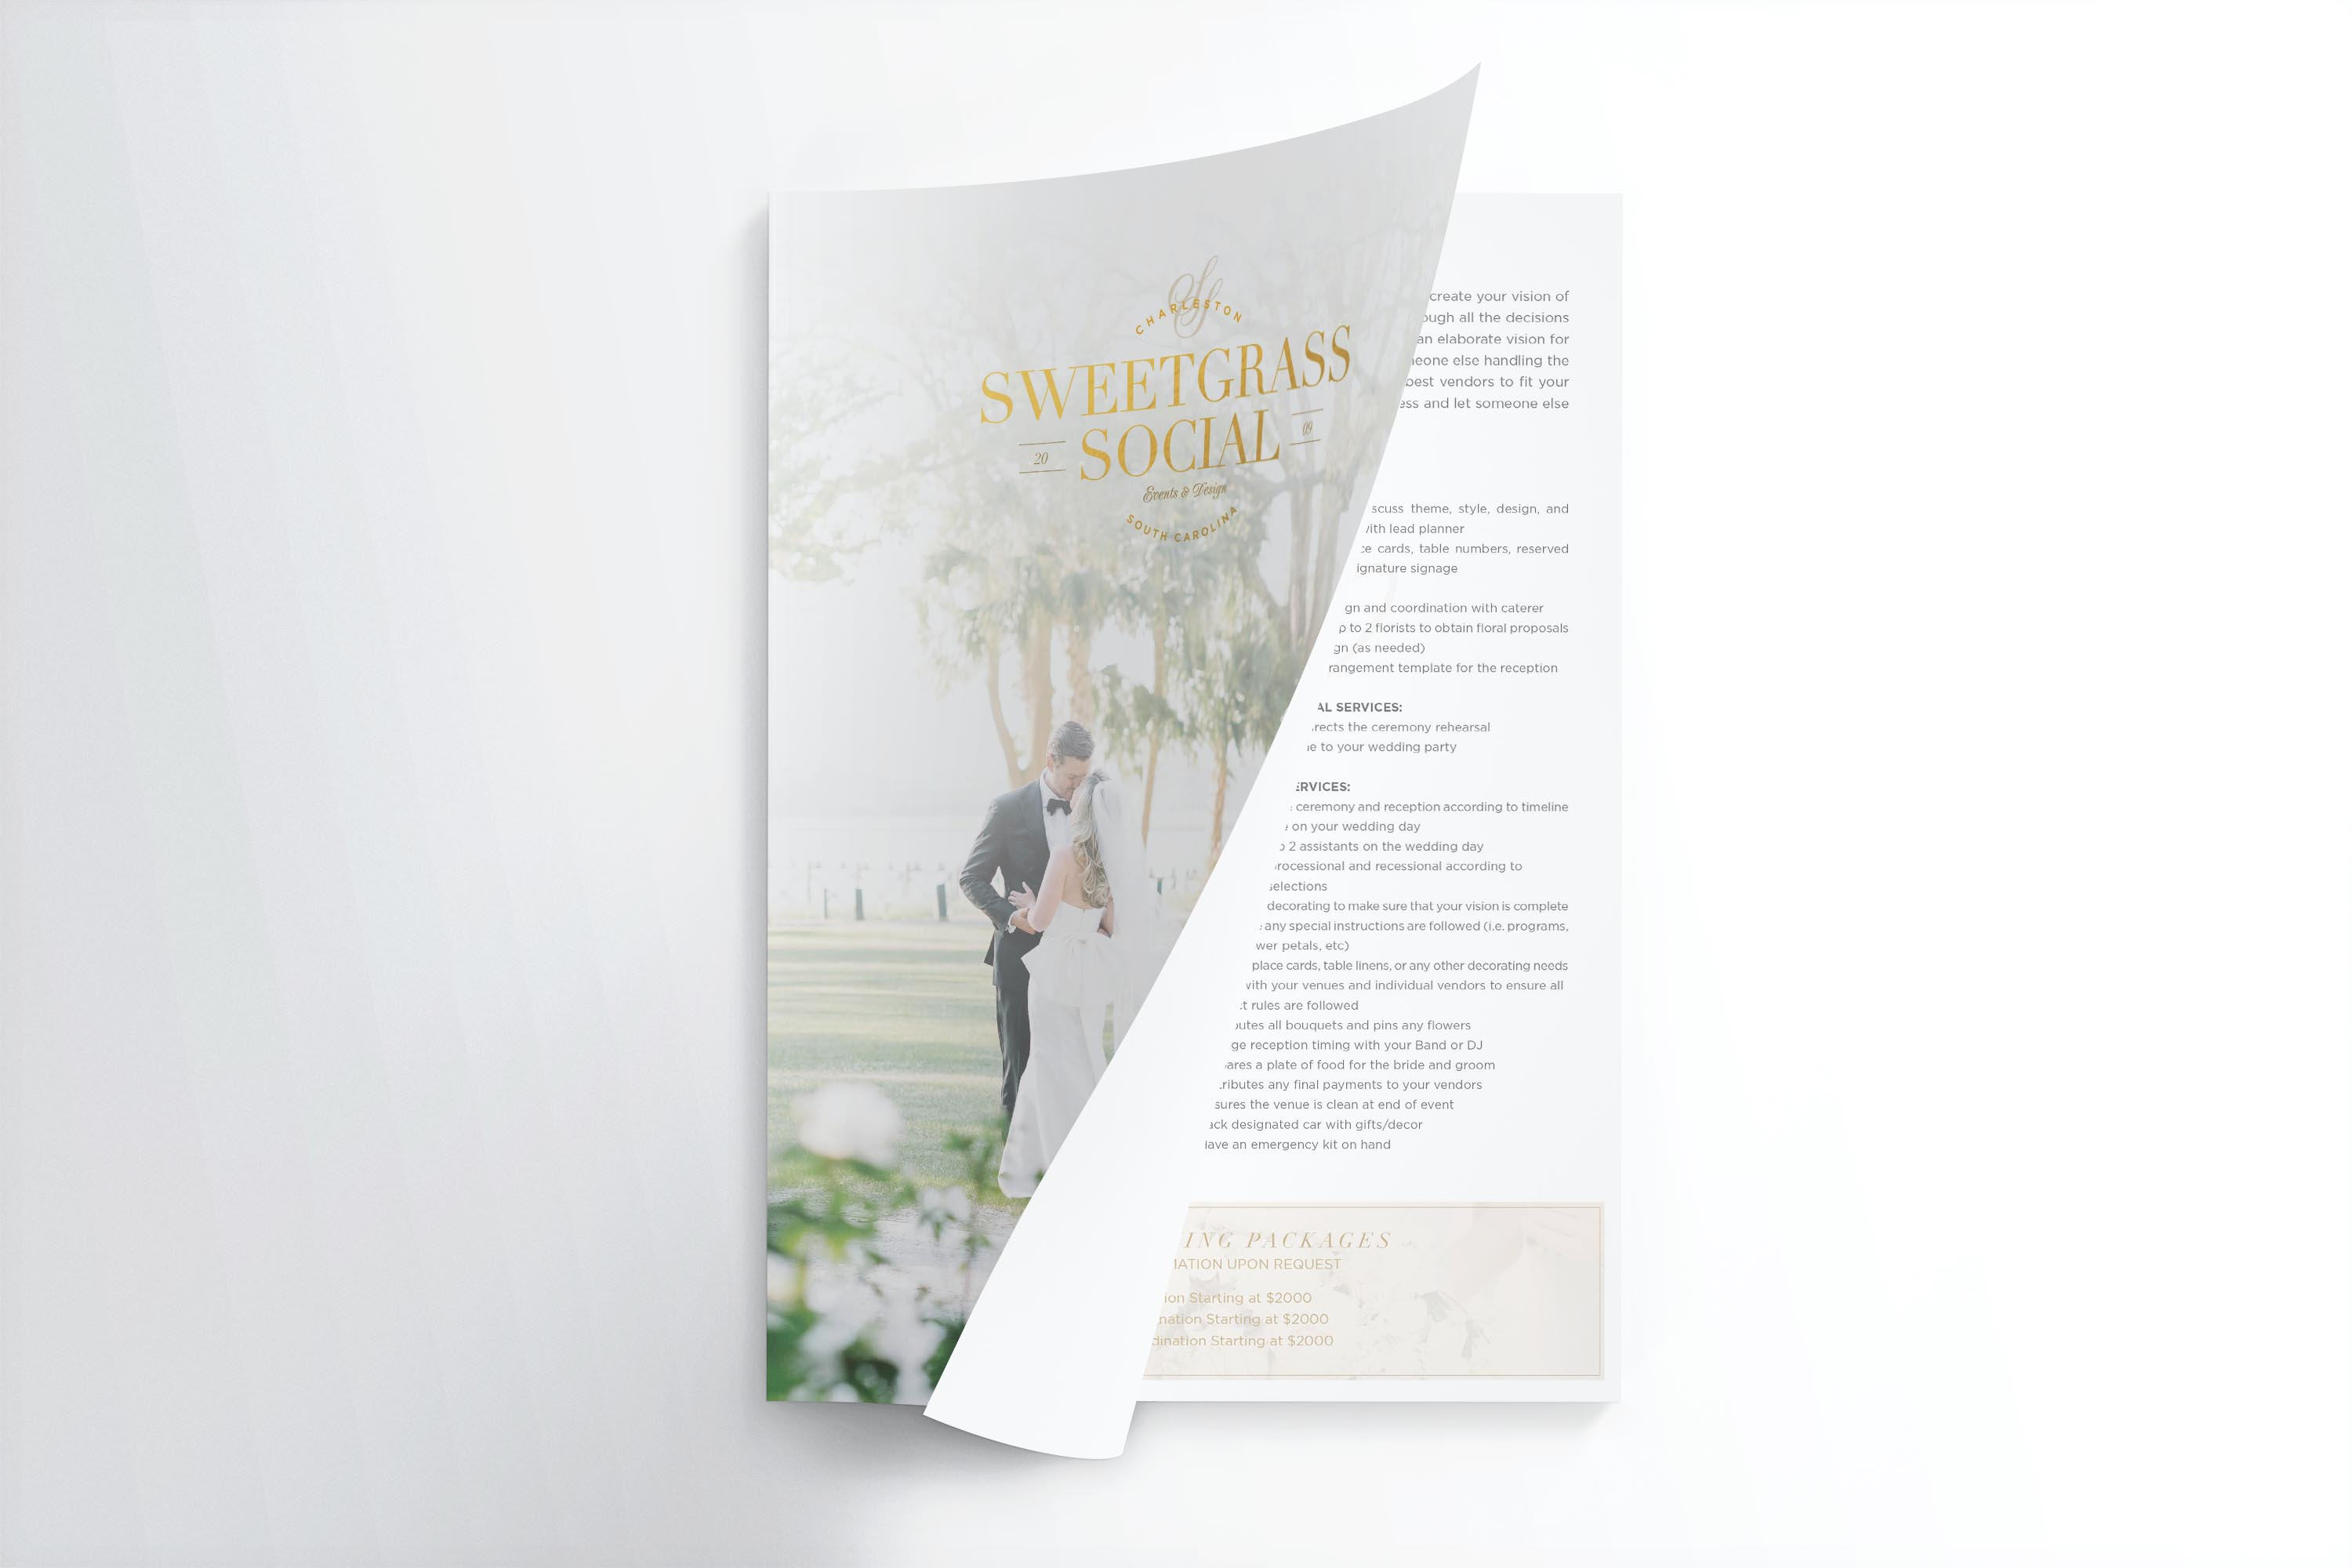 media kit design, sales kit design, wedding planner